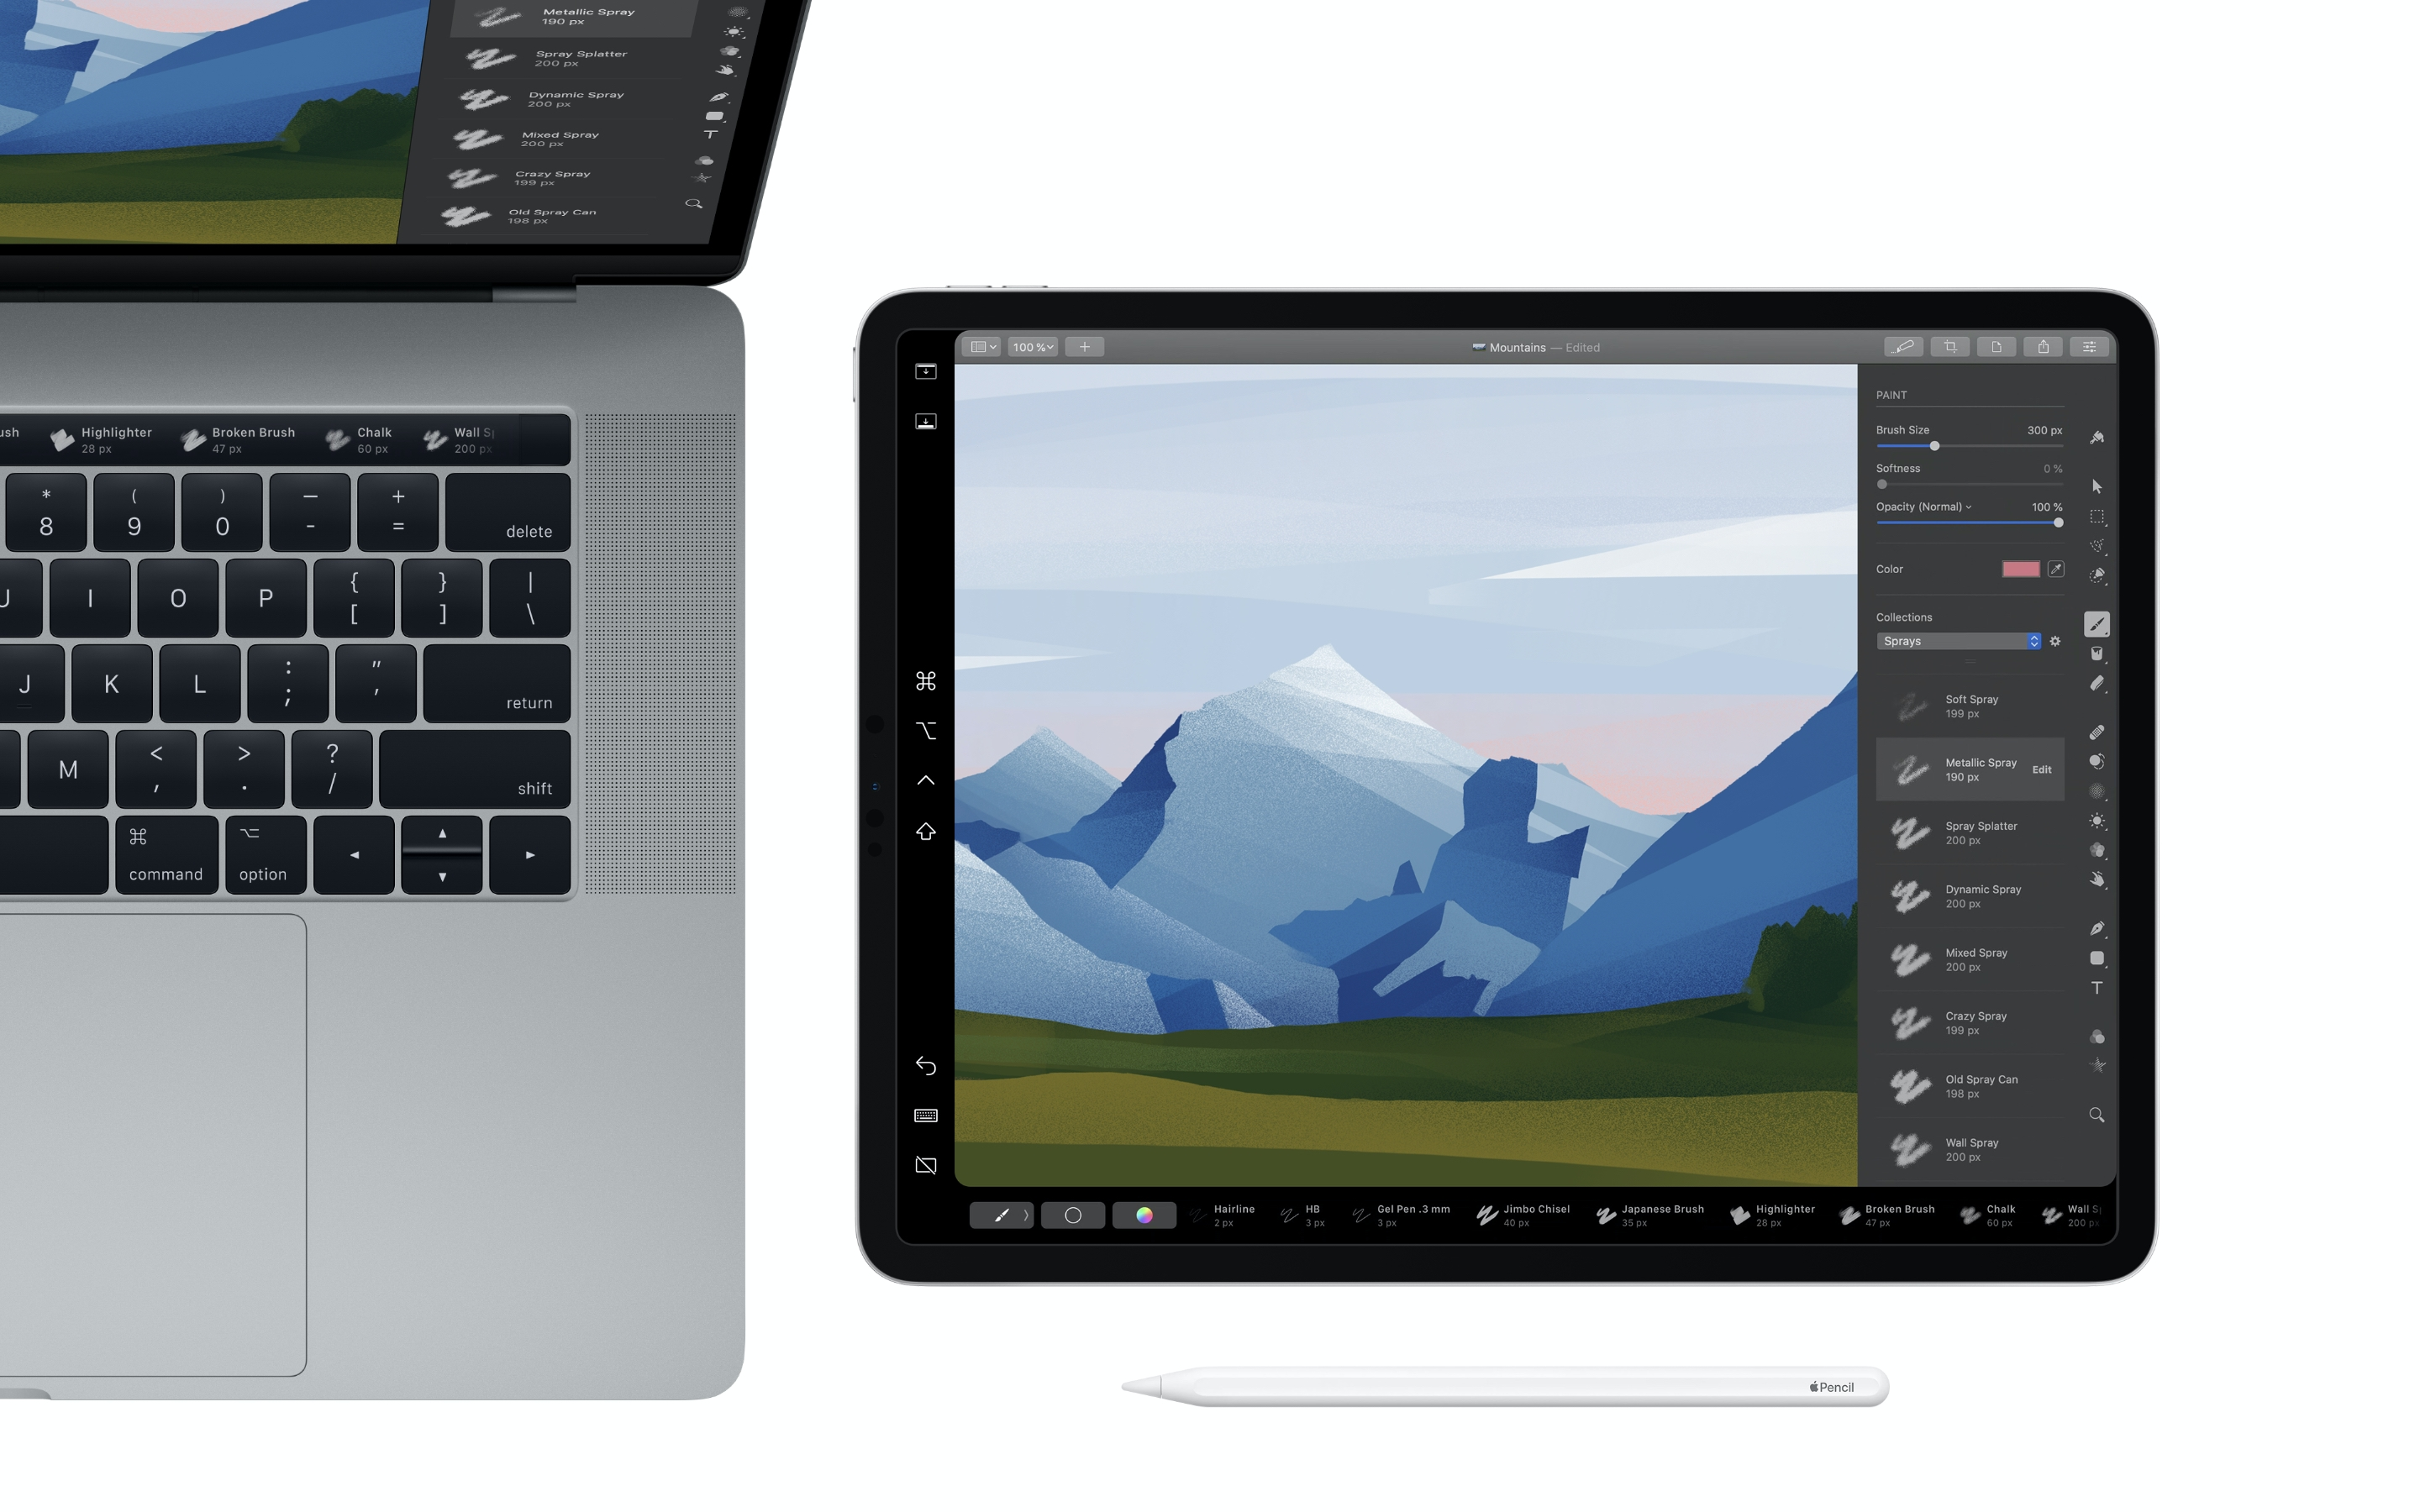 Pixelmator Pro 1.5 Avalon Update Released - Gains macOS Catalina Support